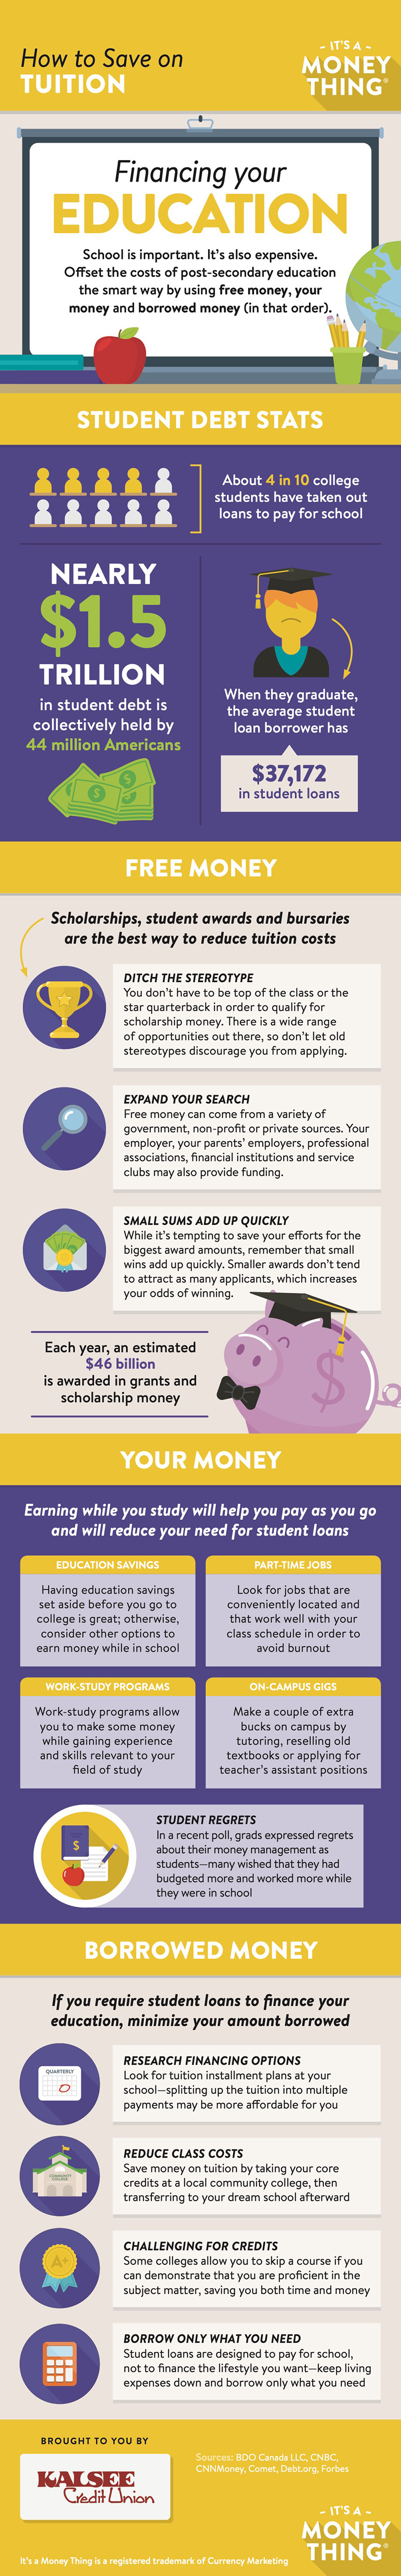 How to Save on Tuition infographic, click for transcription